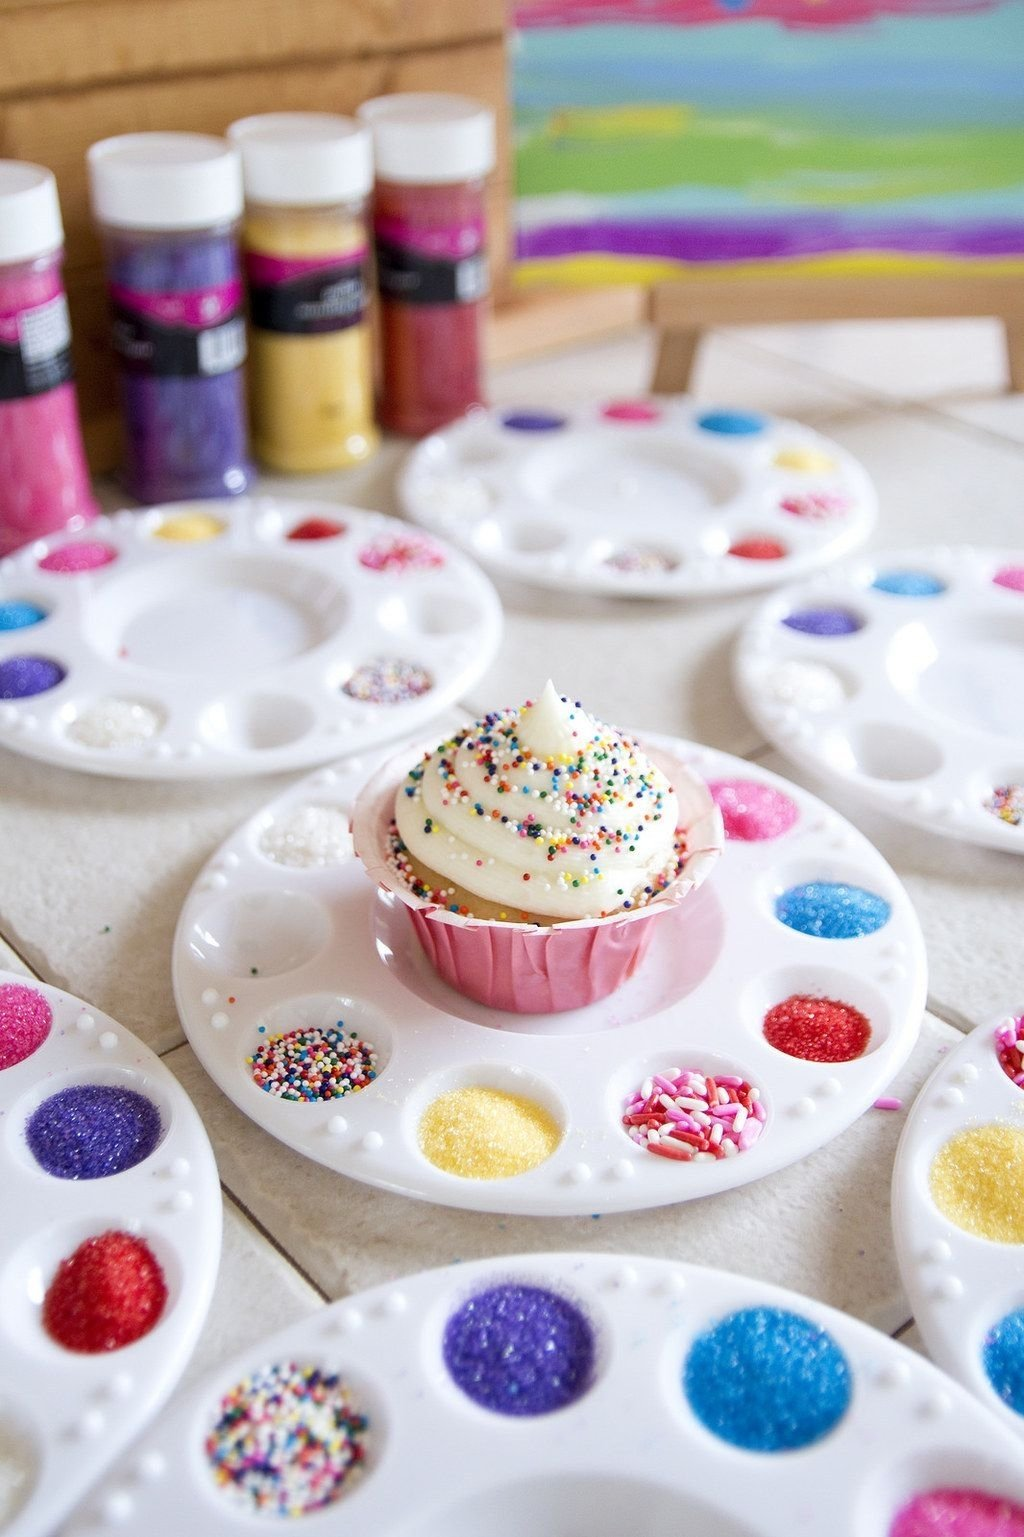 10 Fashionable 5Th Birthday Party Ideas For Girls cupcake decorating sparkle pony girls dream and pony 1 2020